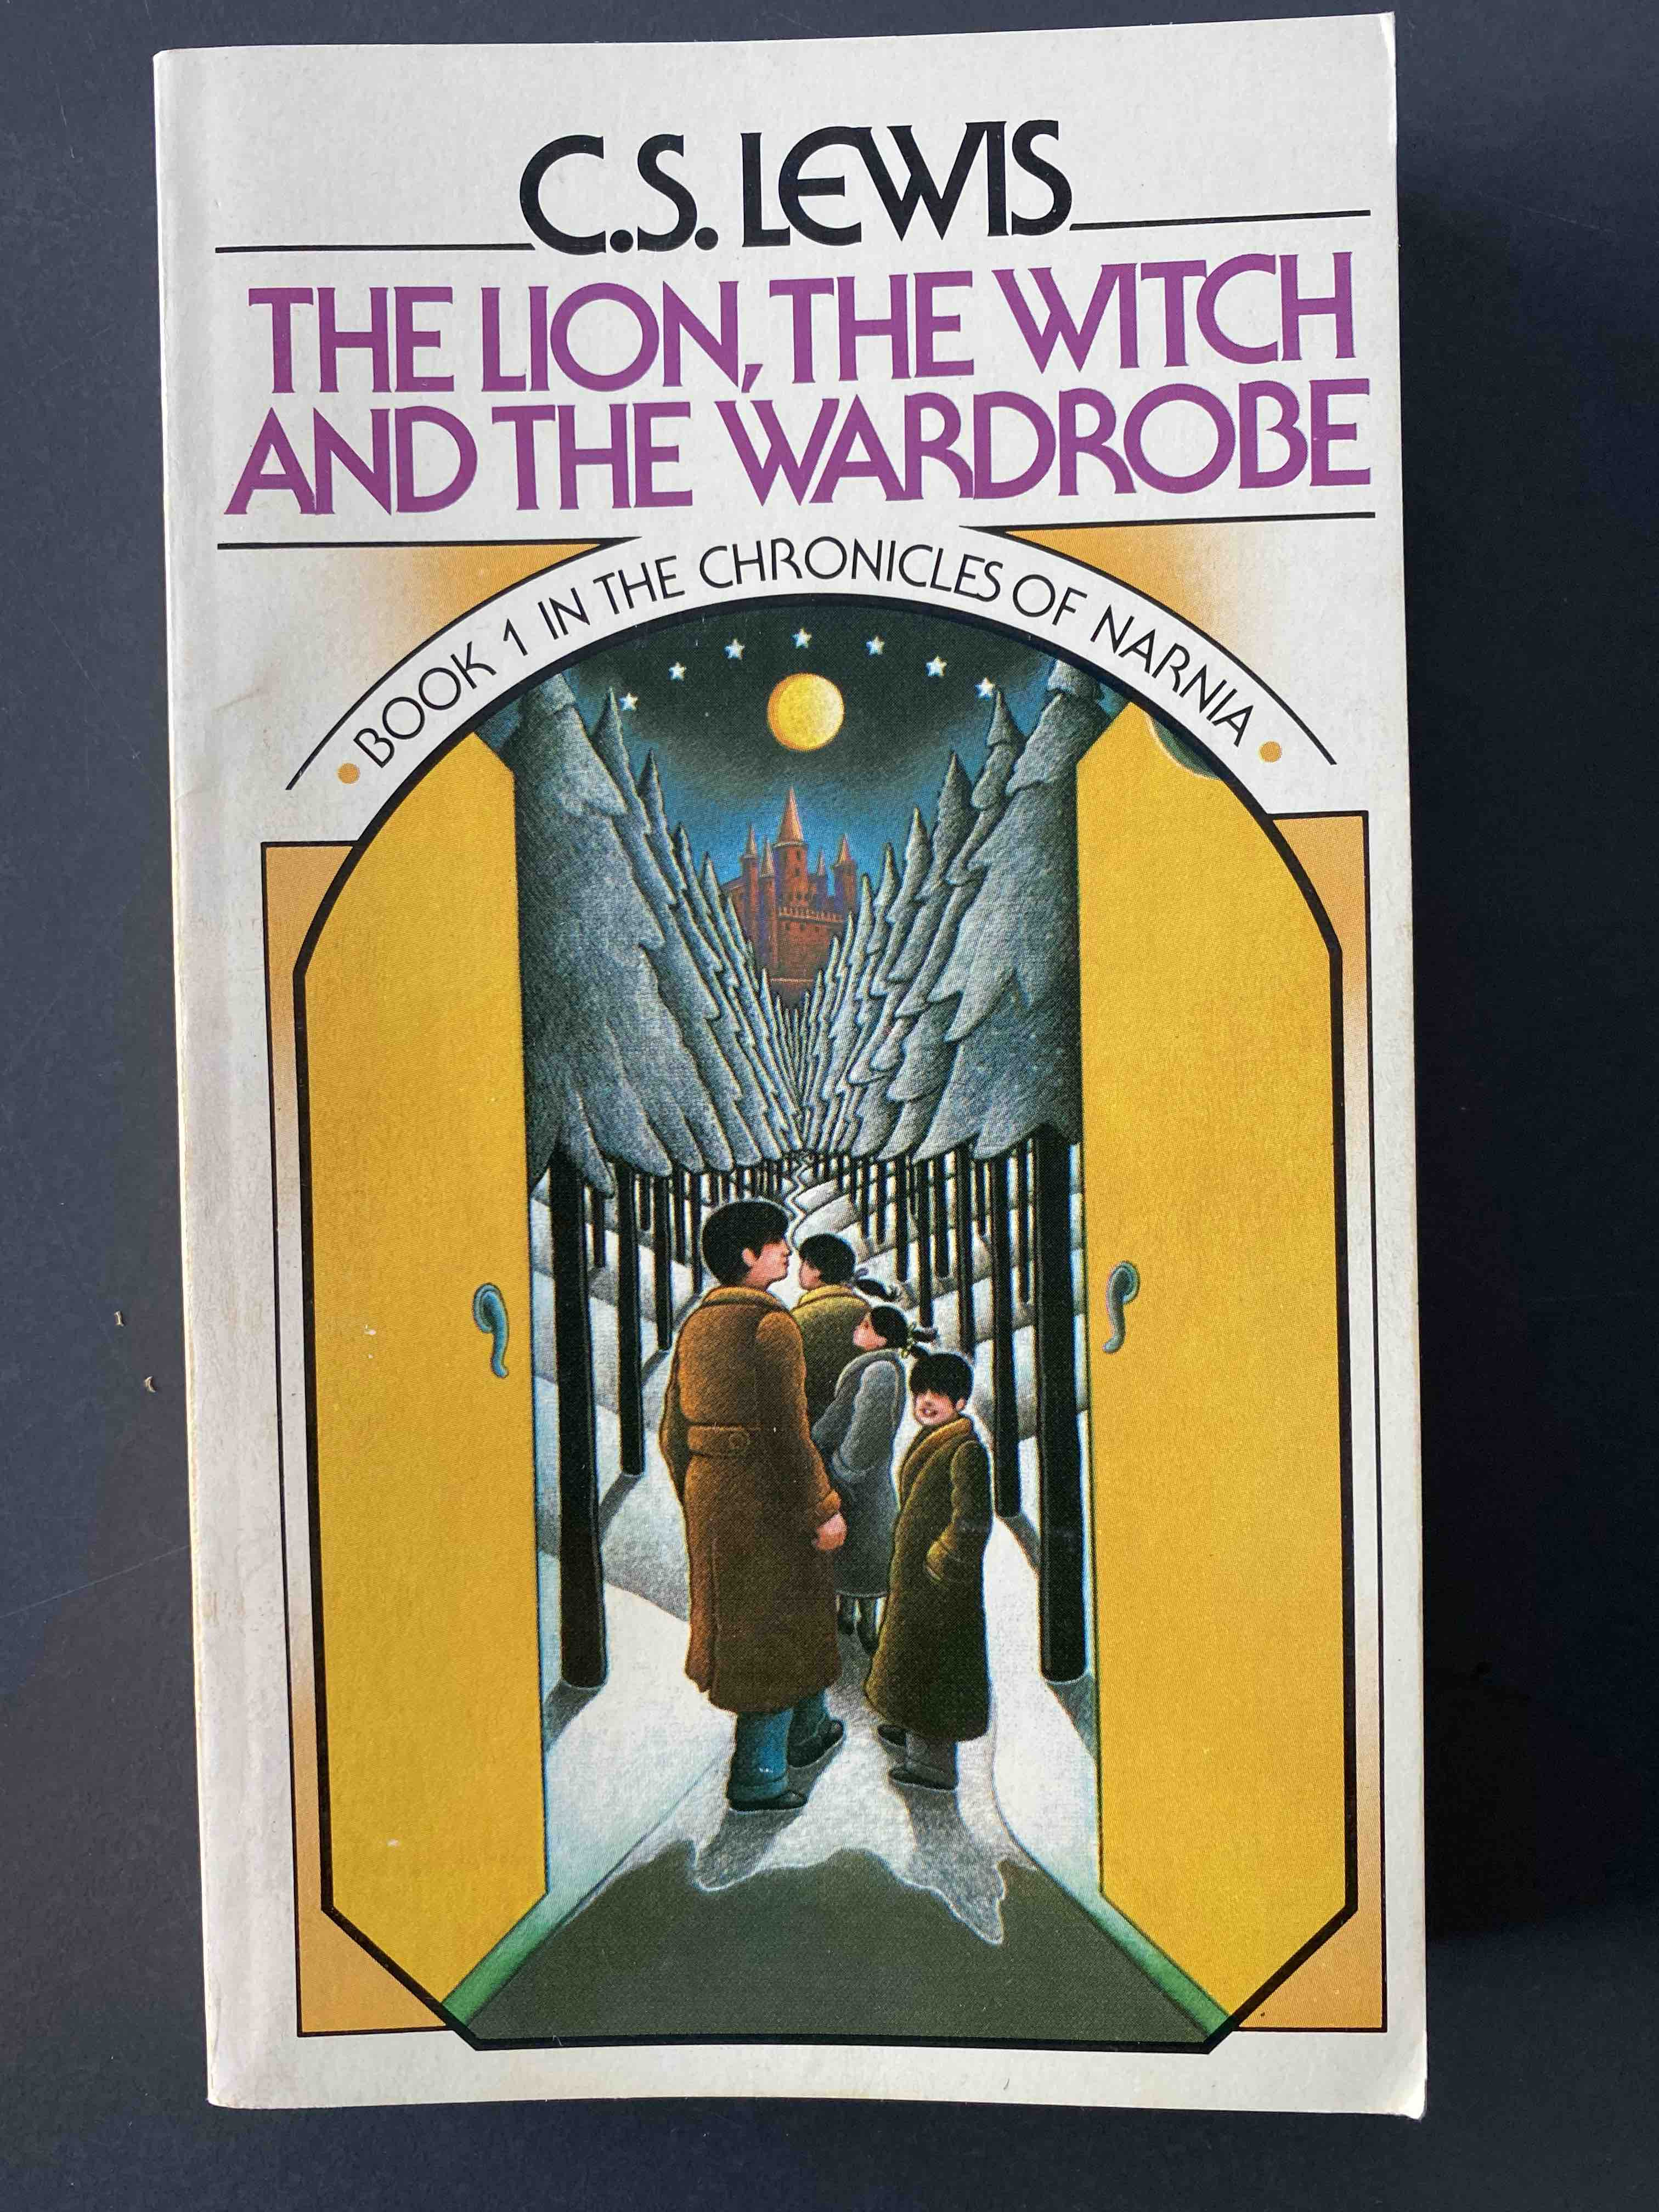 C.S. Lewis, The Lion, the Witch, and the Wardrobe. Front cover